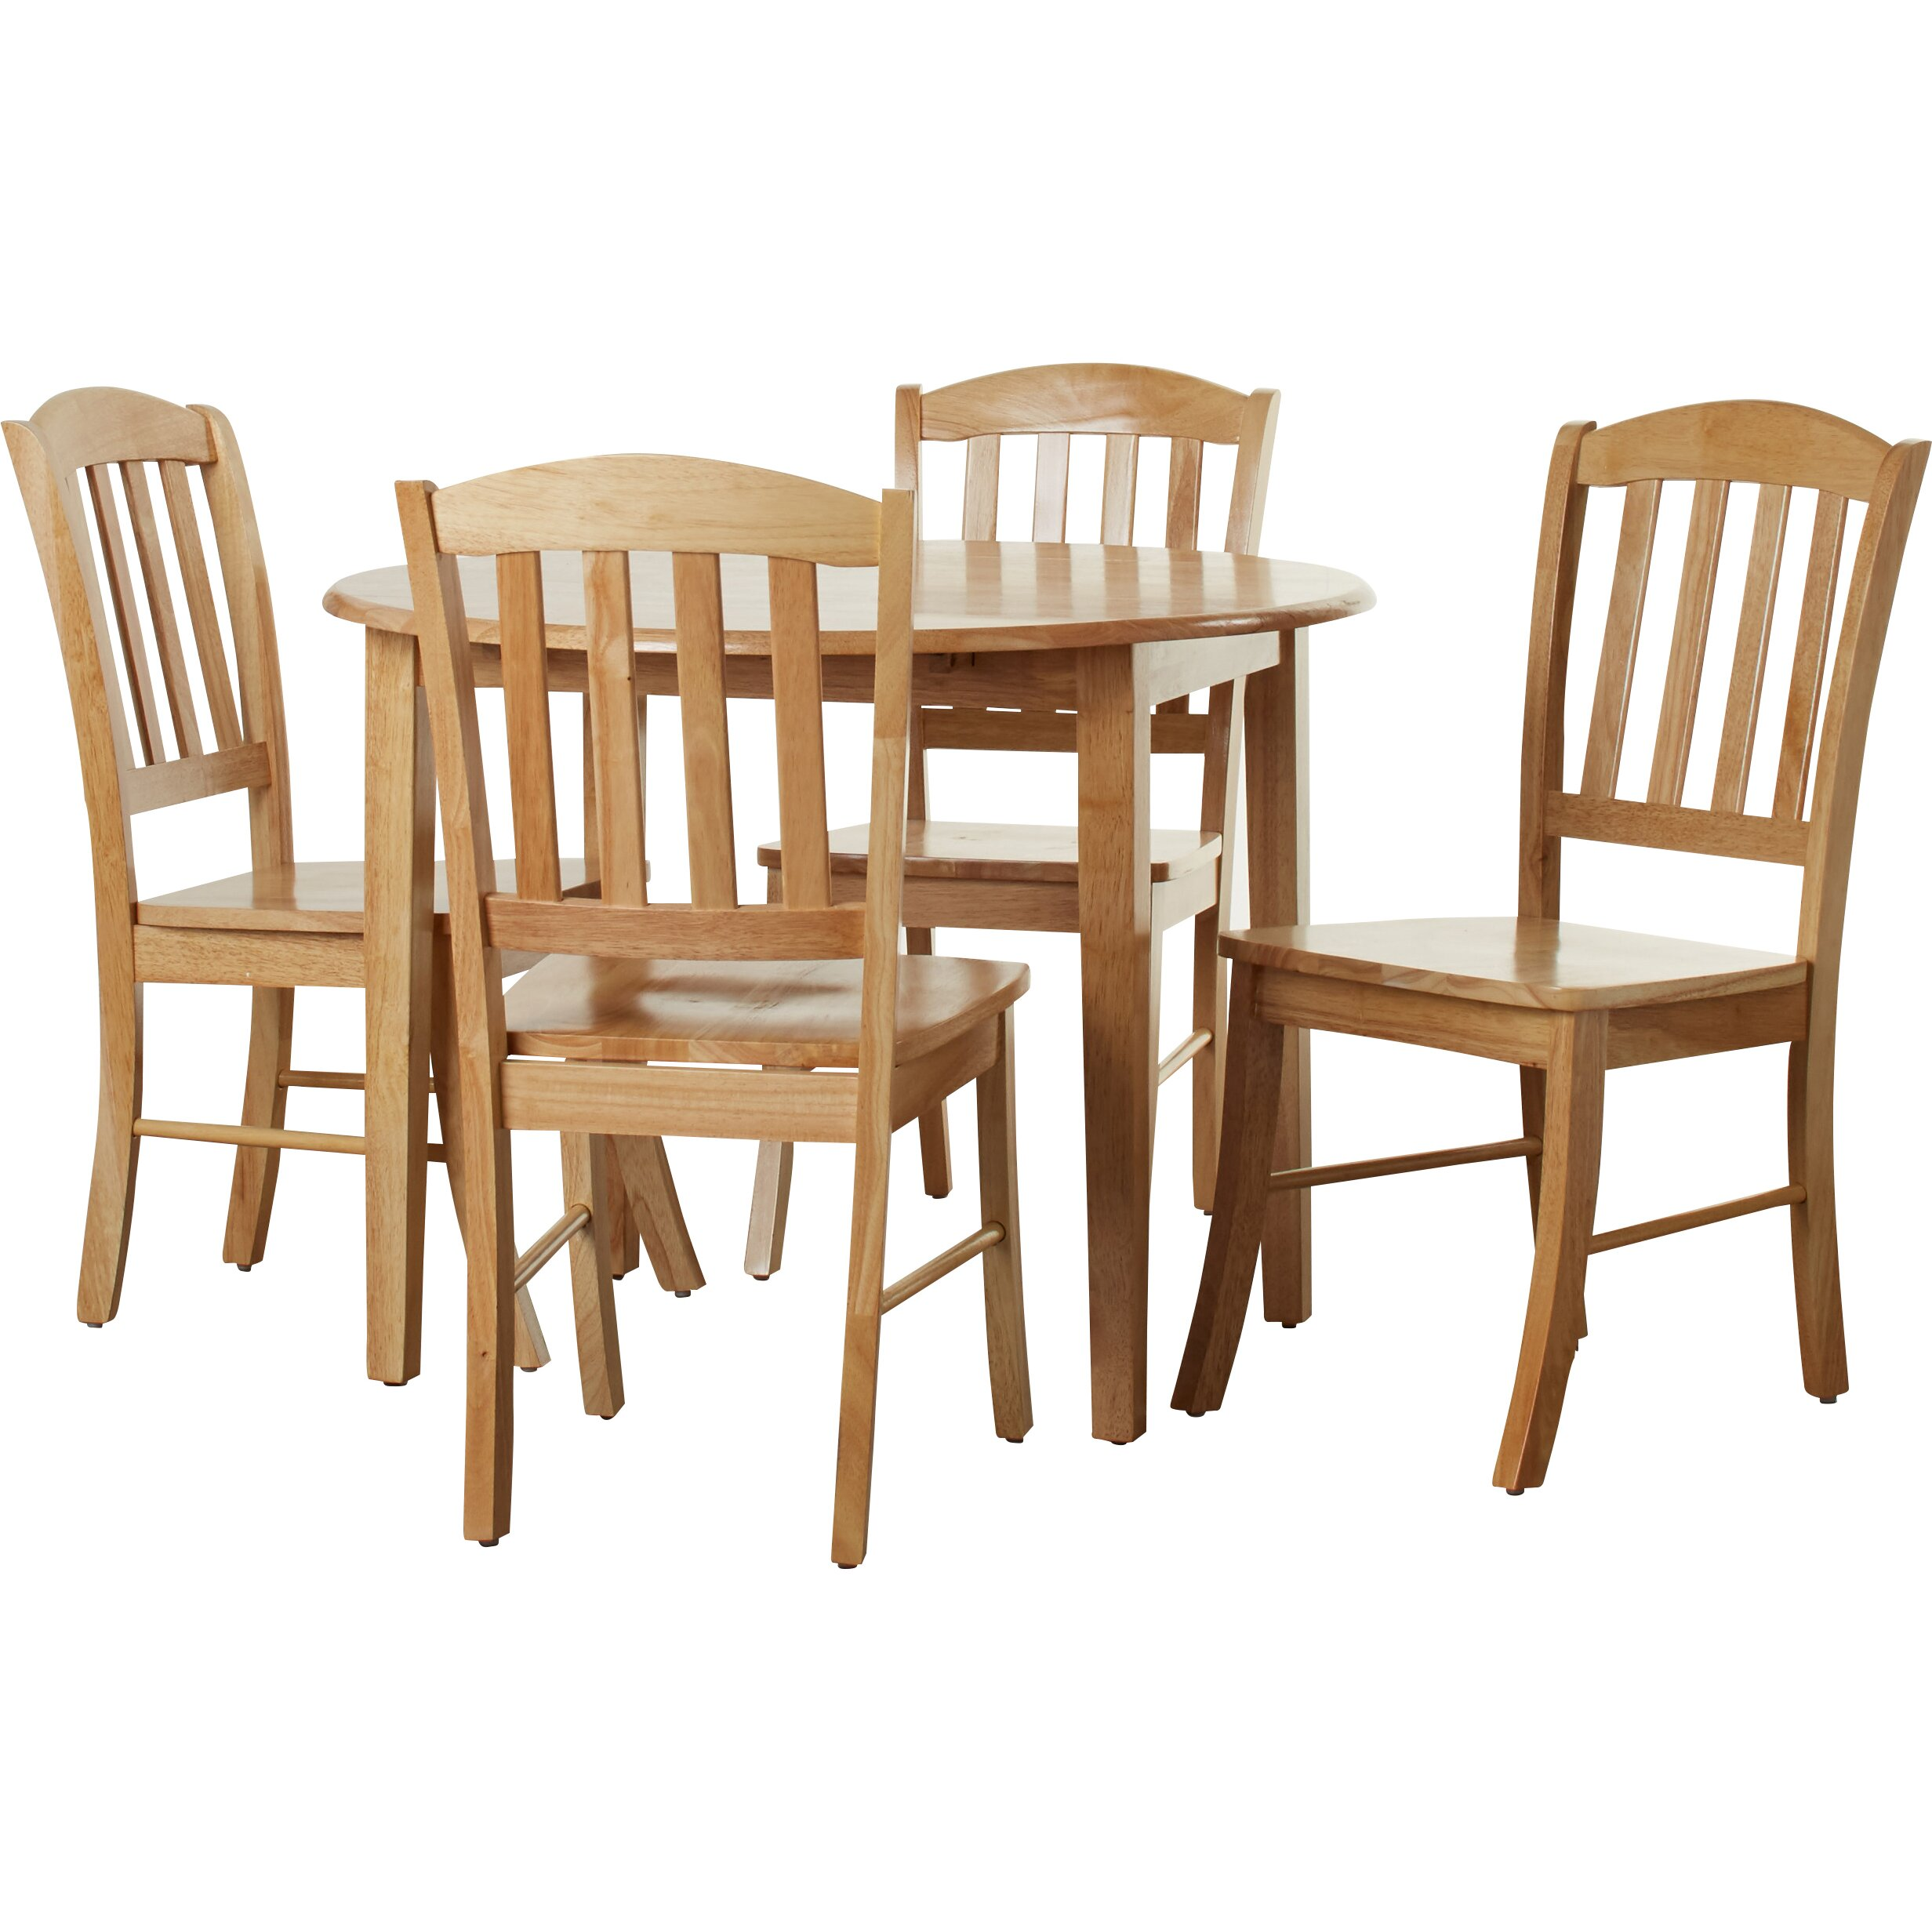 4 Dining Table And Chairs: Three Posts Manheim Extendable Dining Table And 4 Chairs